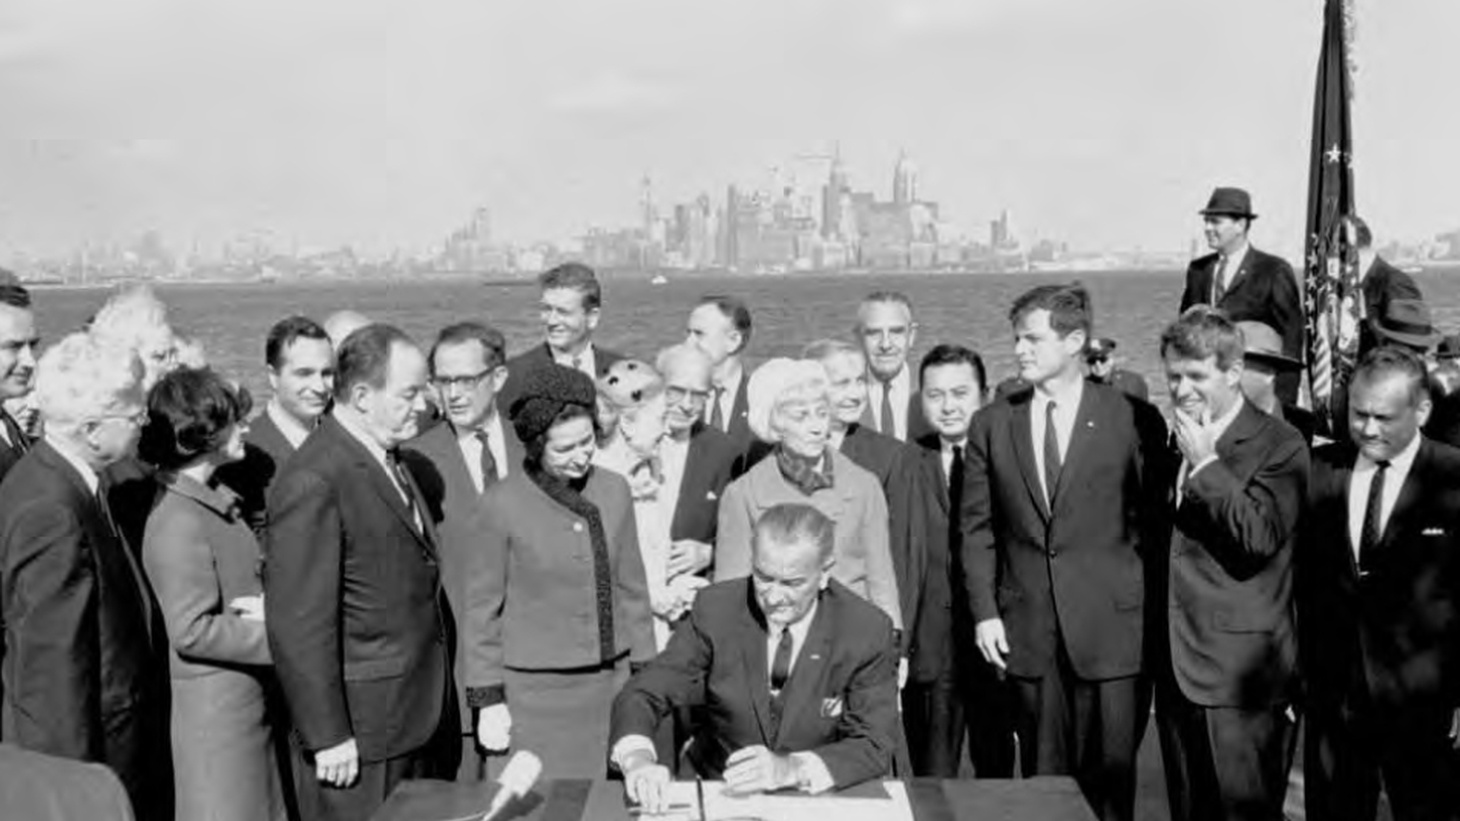 Fifty years ago President Lyndon Johnson signed the Immigration Act into law and completely changed who can immigrate to the United States. In 1965, 84% of Americans were white. Today, due largely in part to the Immigration Act, the white population has shrunk to around 60%.